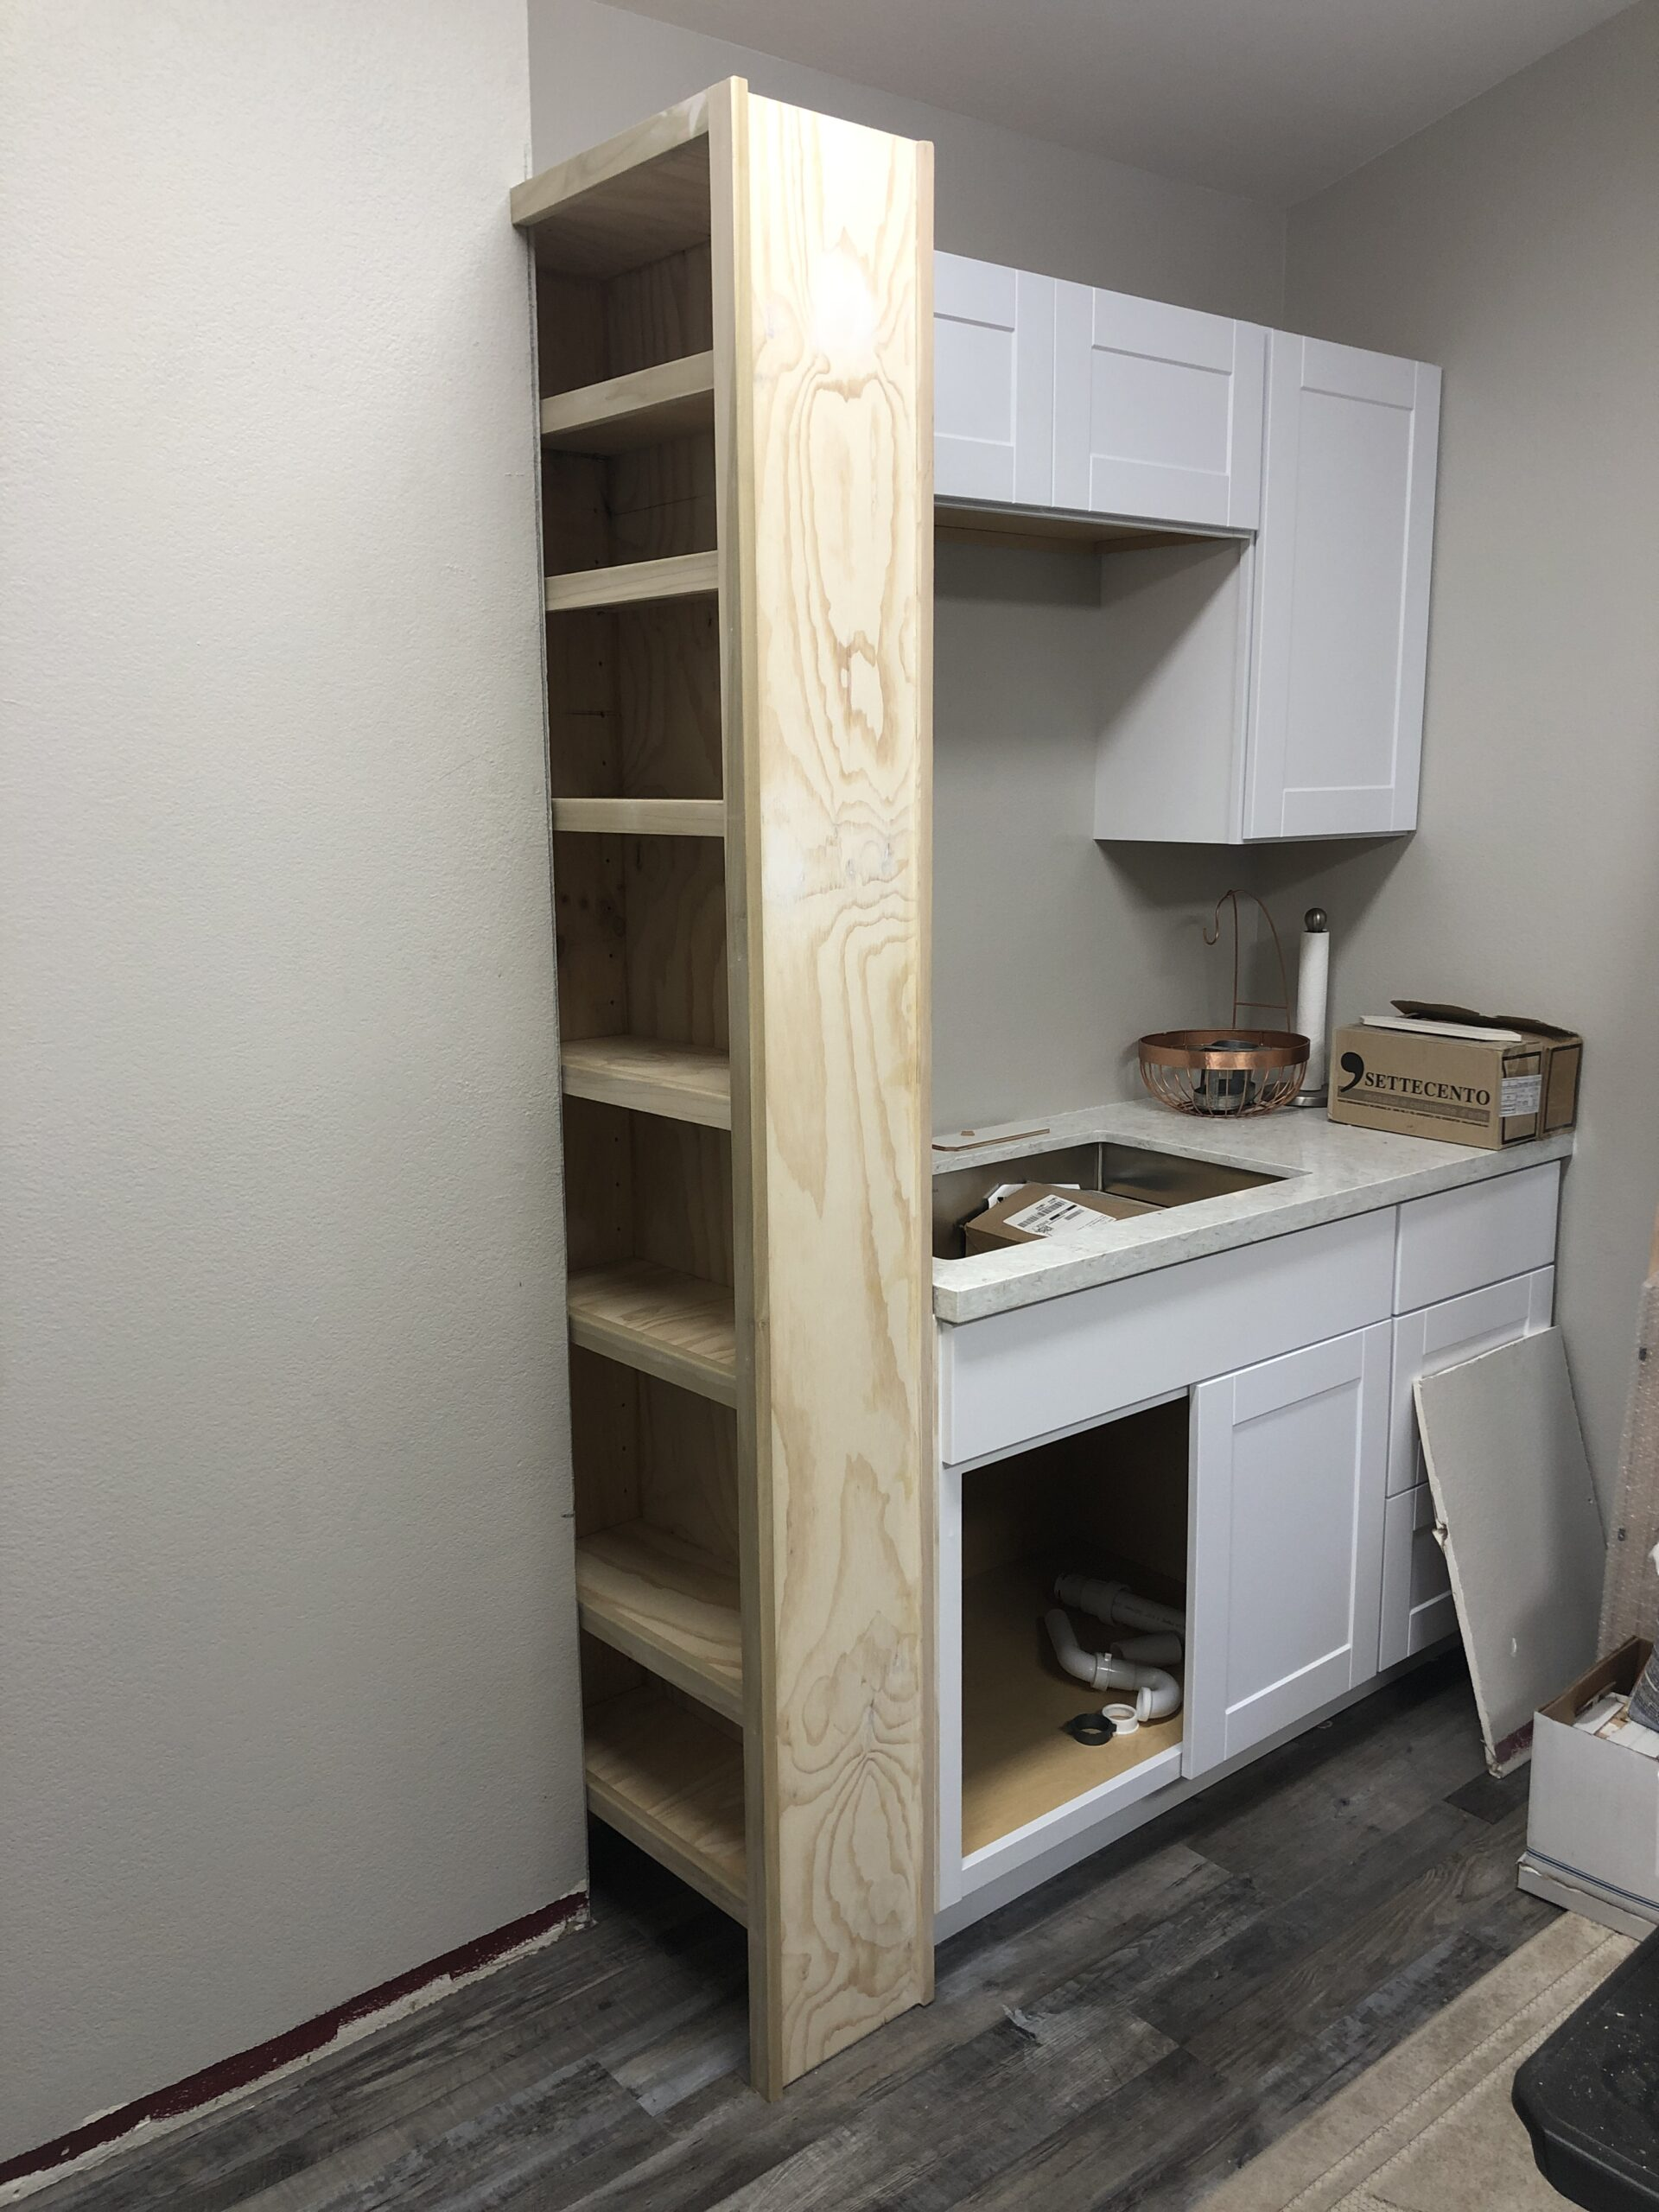 Custom built in cabinet. Poplar, paint grade.